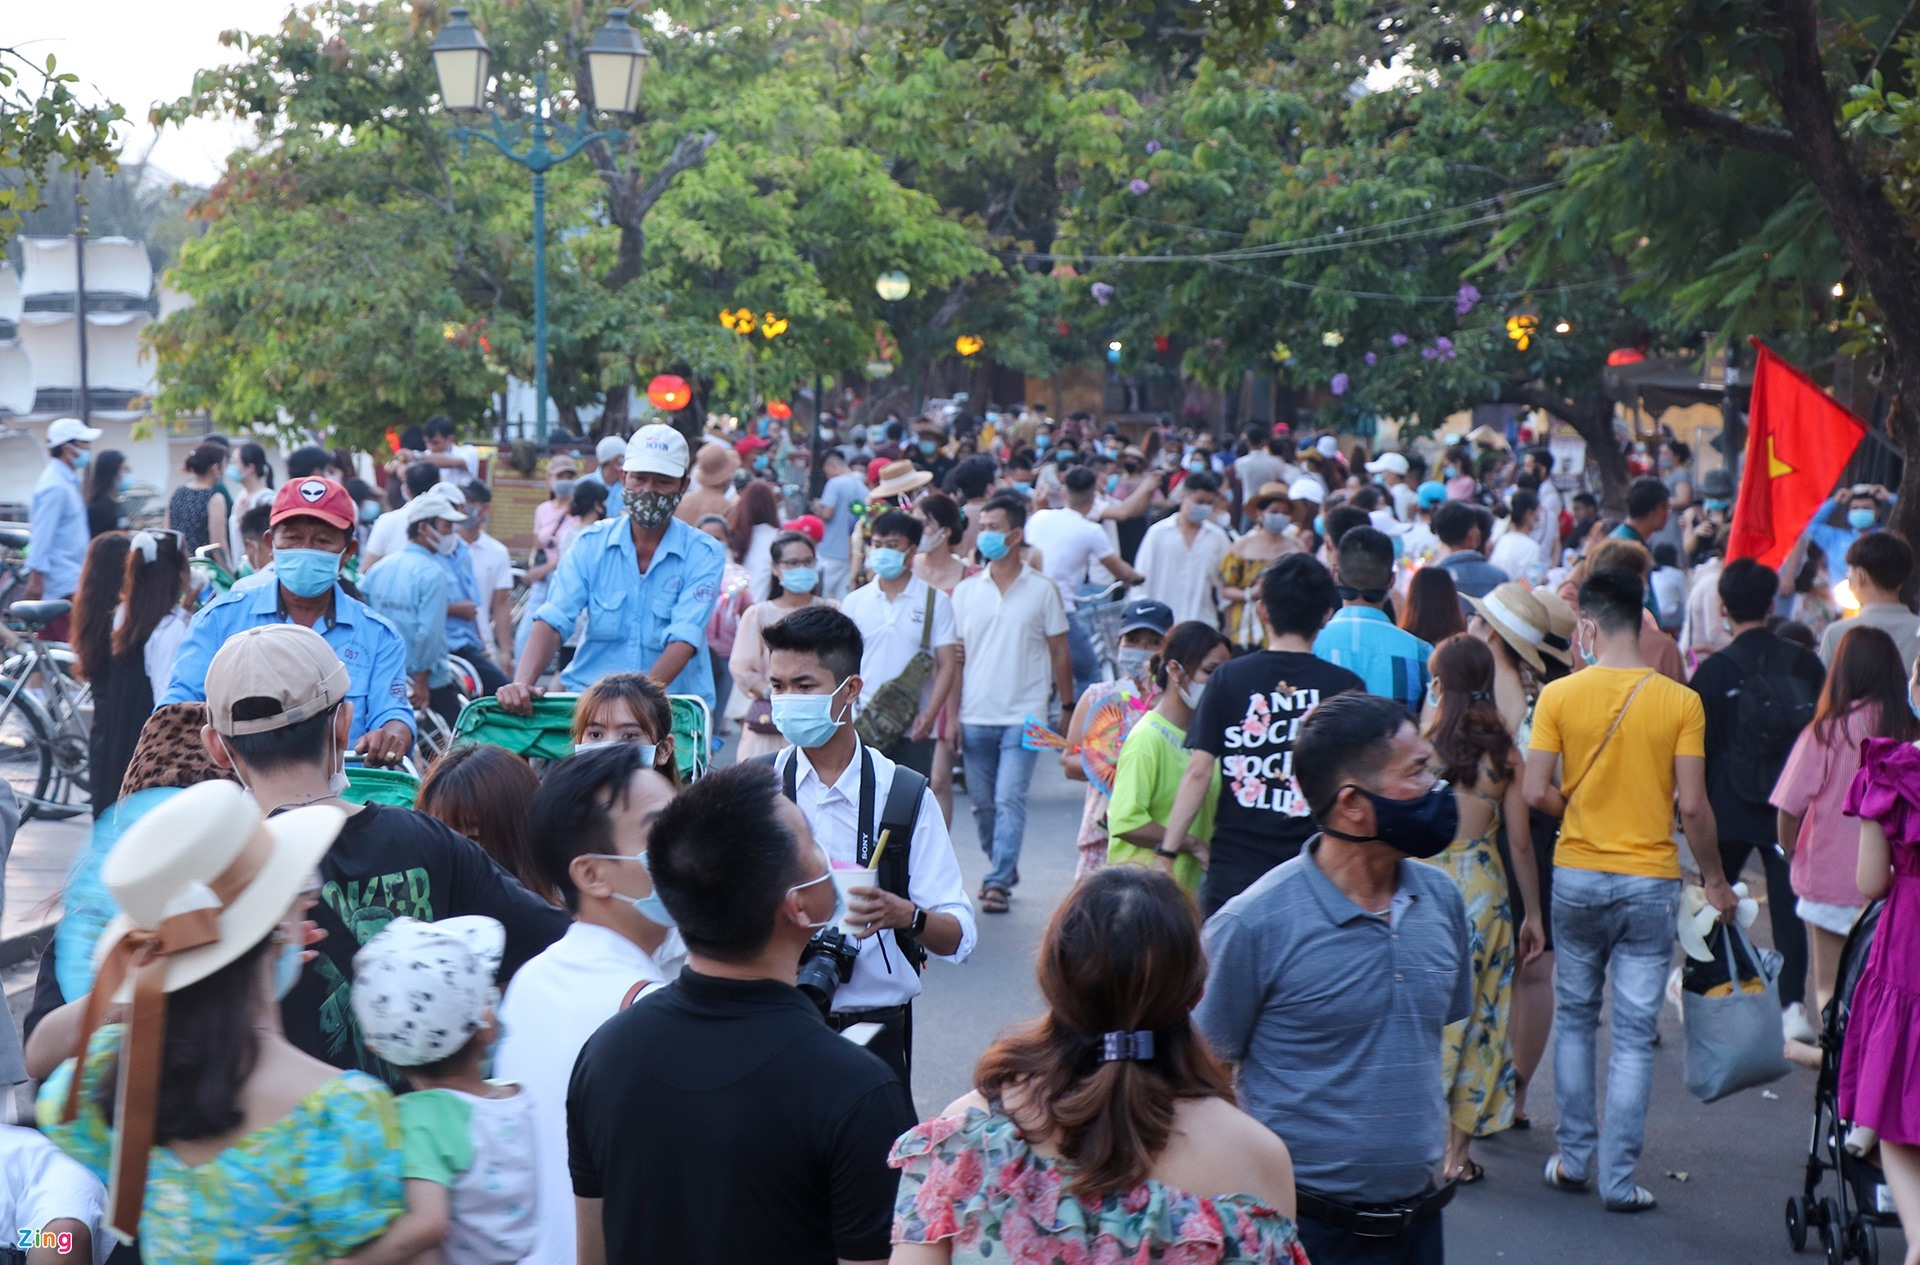 Pedestrian streets such as Bach Dang, Nguyen Thai Hoc, and Le Loi are also very busy.